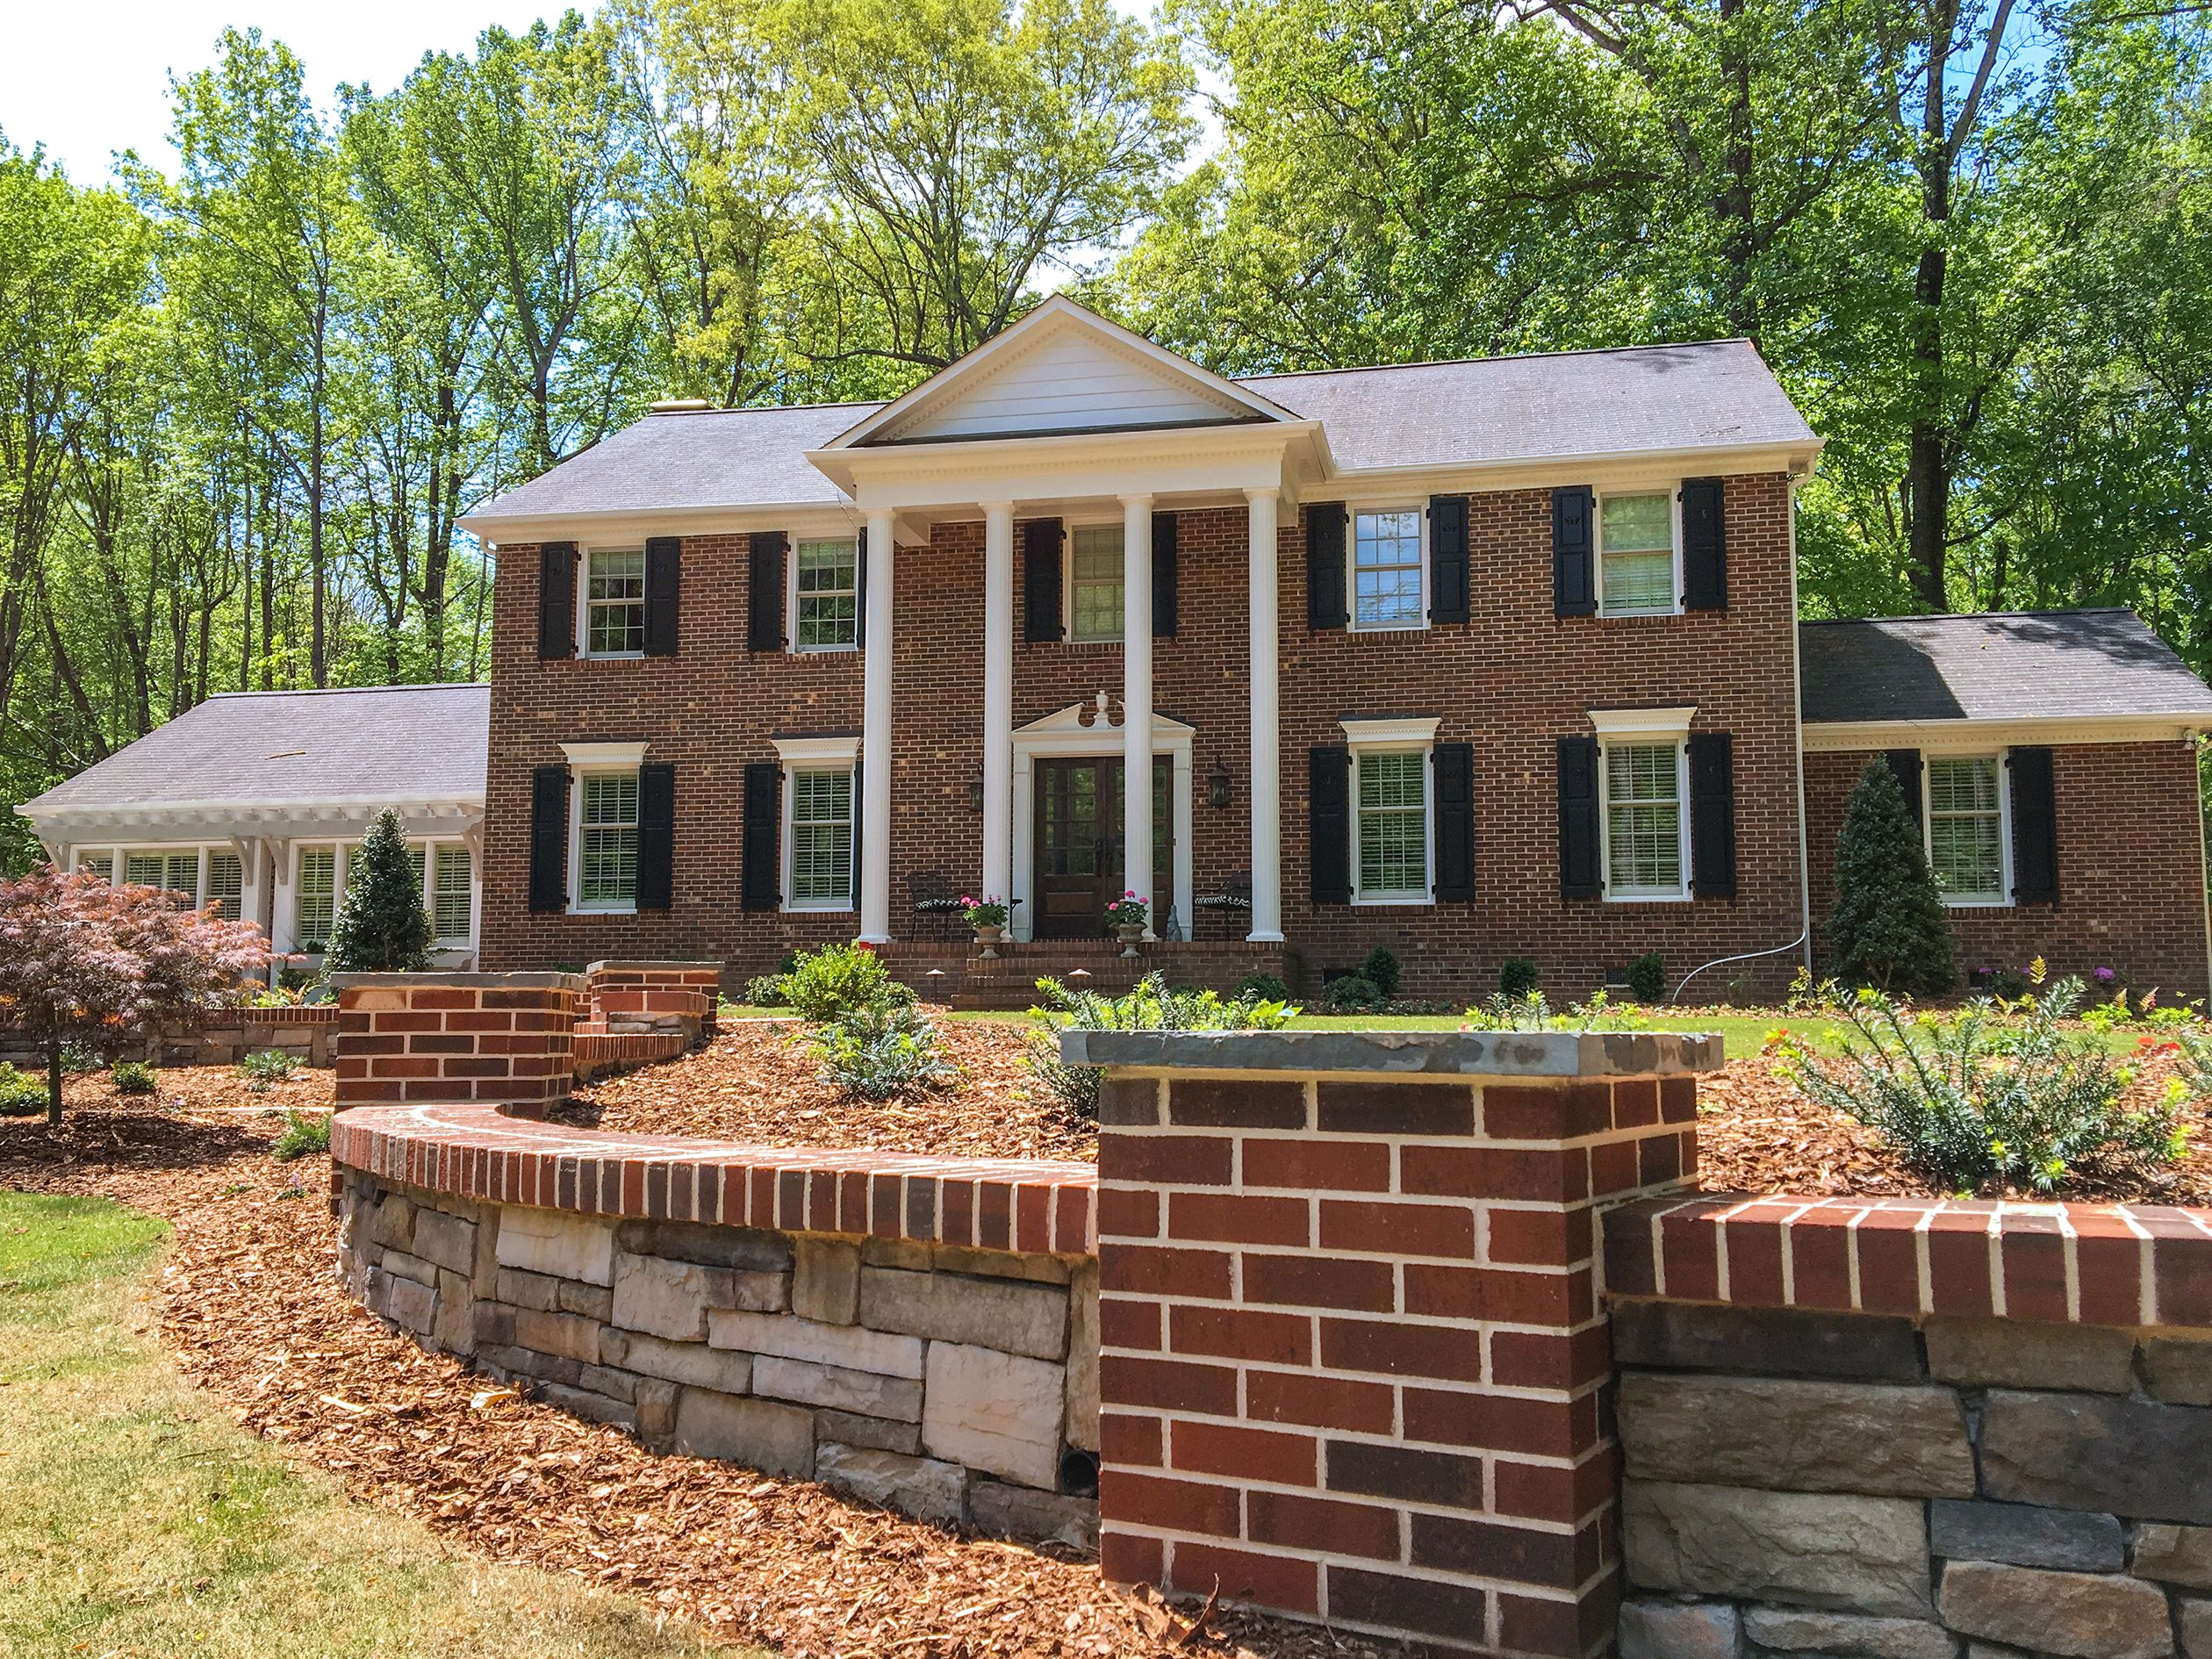 Classic Colonial Home Artfully Landscaped With Curvy Brick And Stone Wall And Walkway Entrance Brick And Stone Brick Colonial House